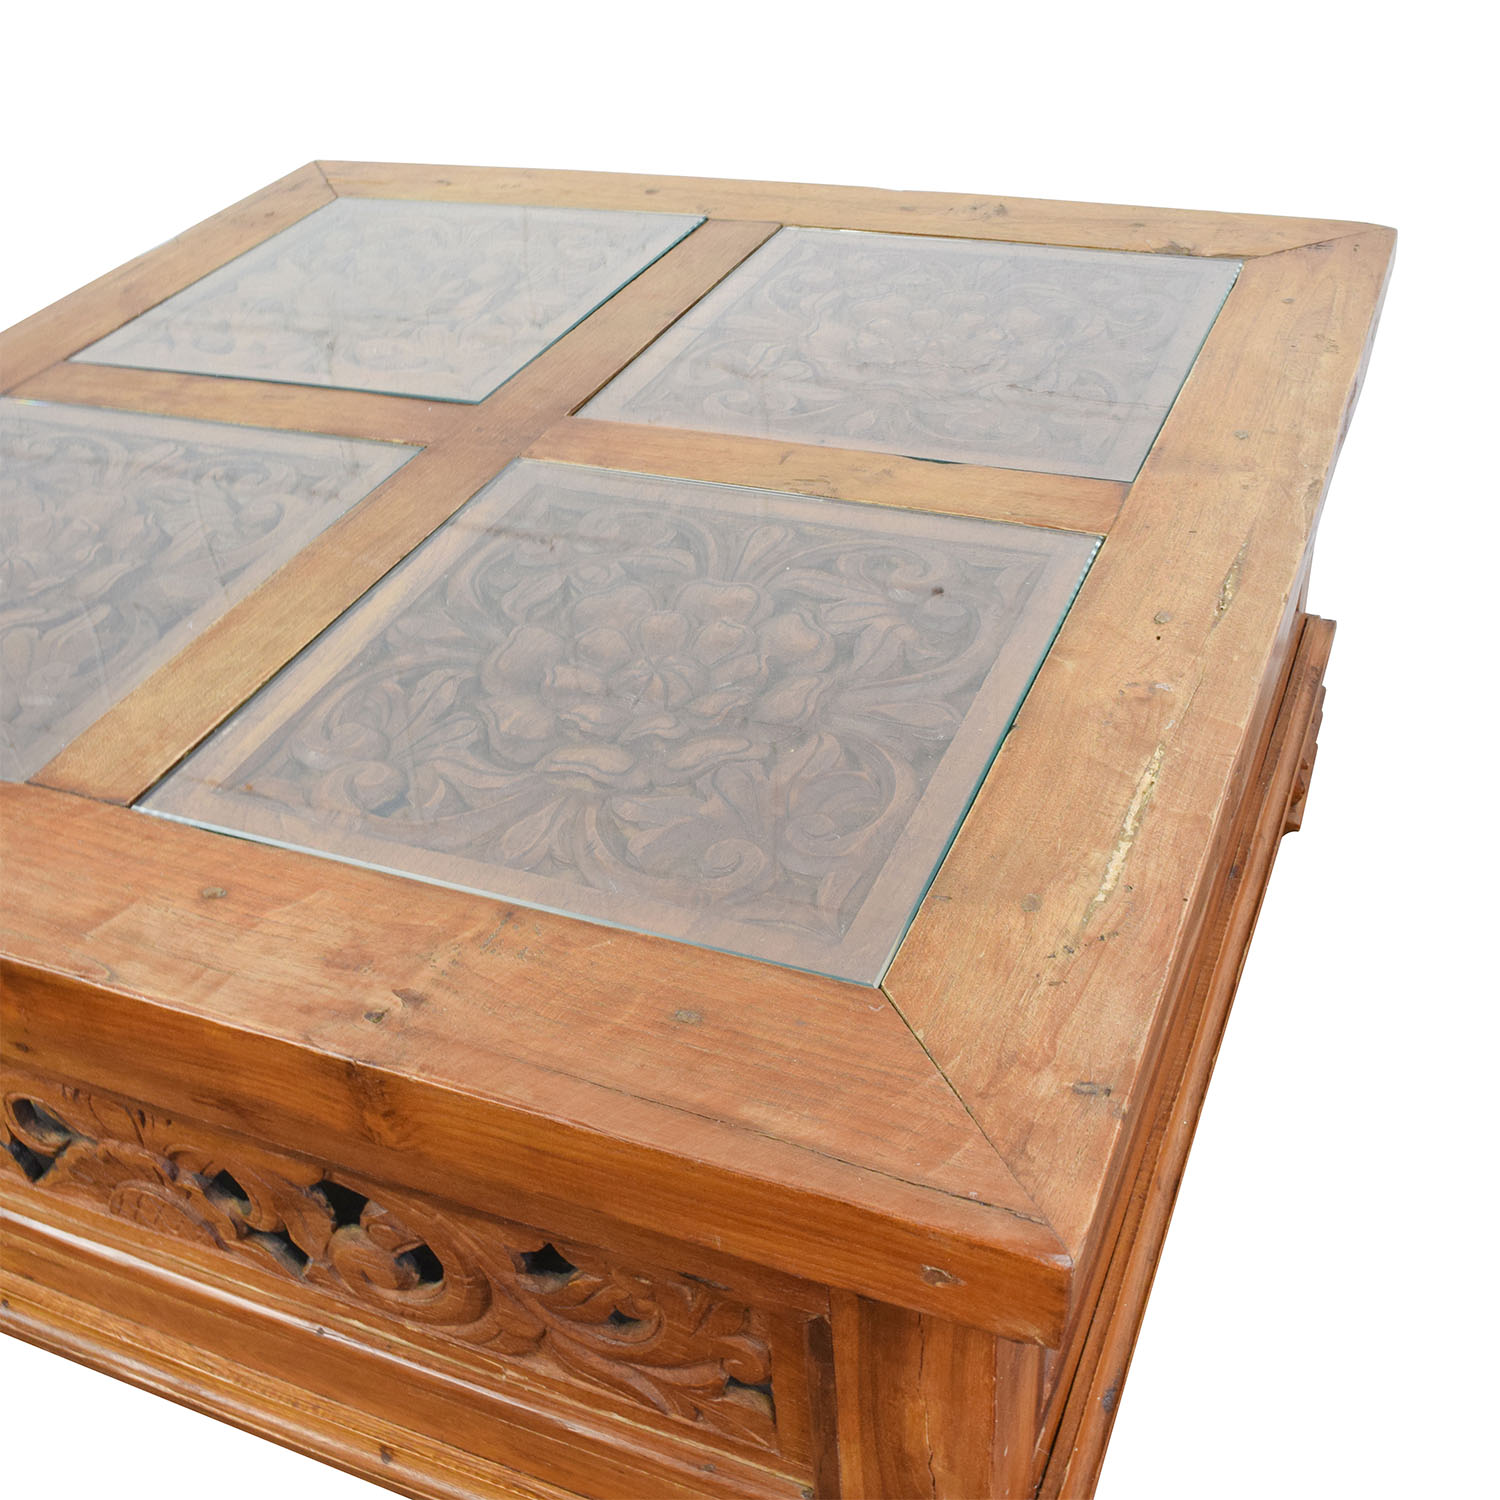 77% OFF - Teak Carved Coffee Table with Glass Top / Tables